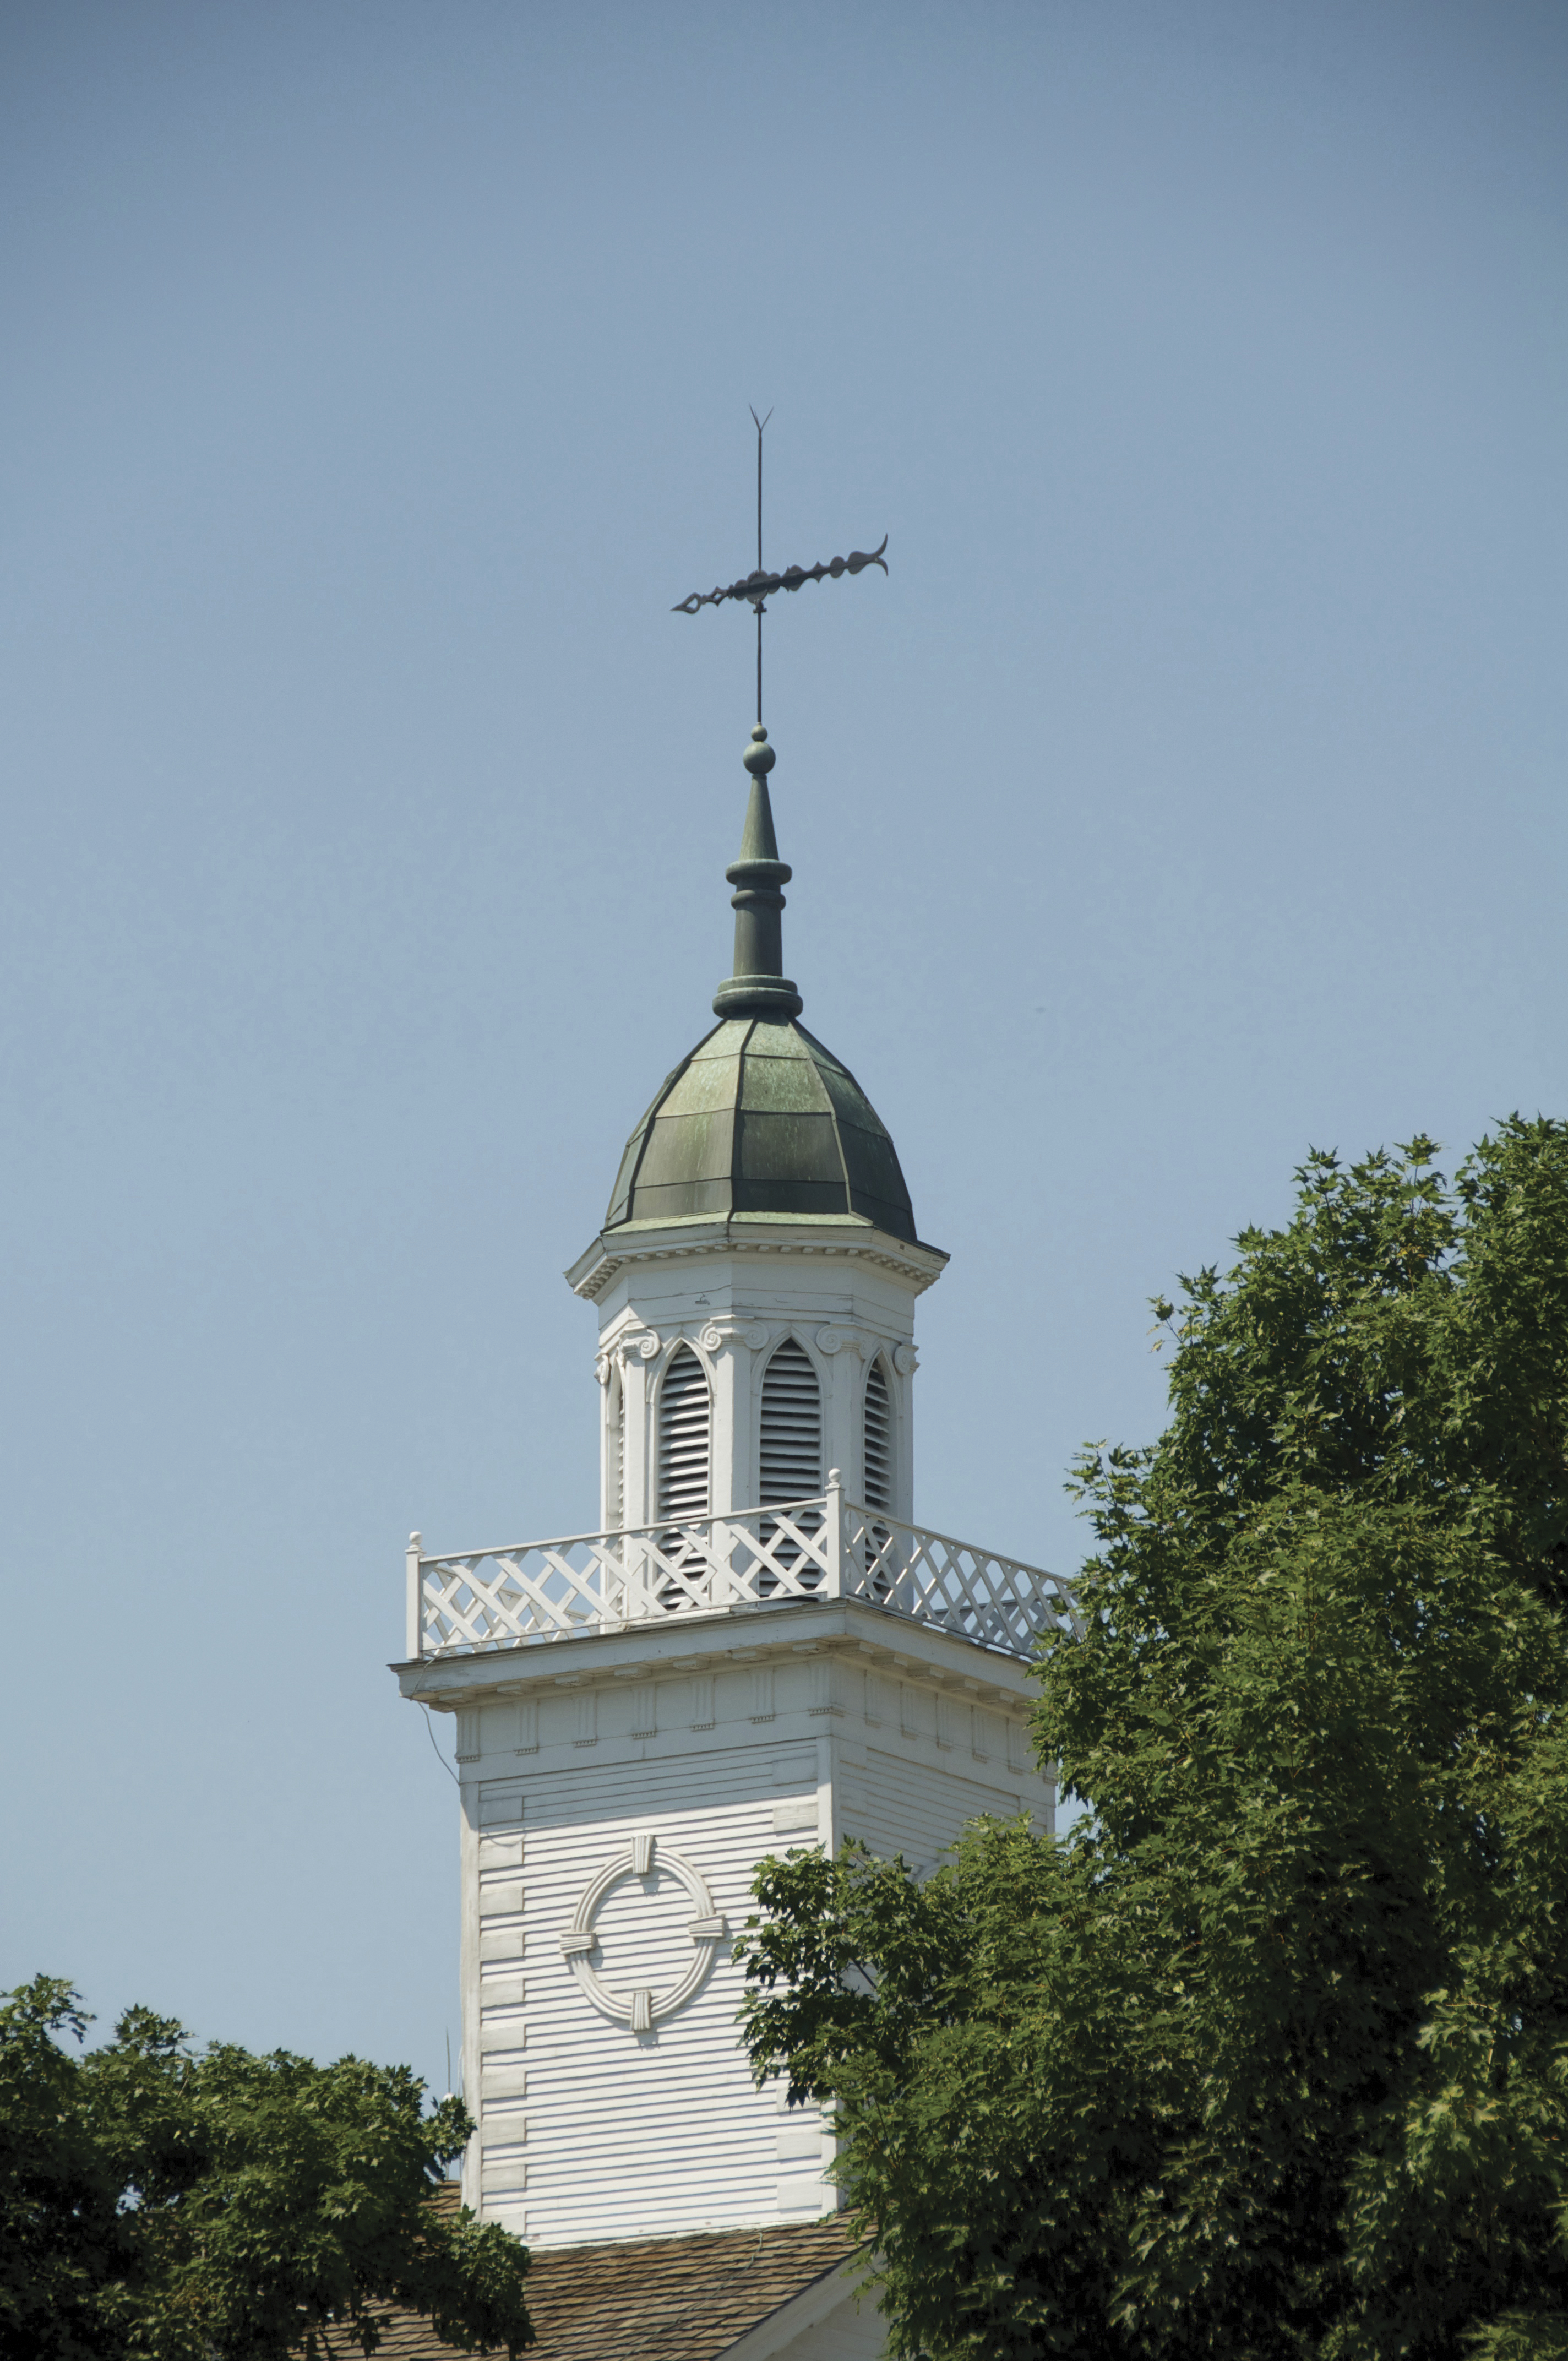 The Kirtland Temple spire, including scenery.